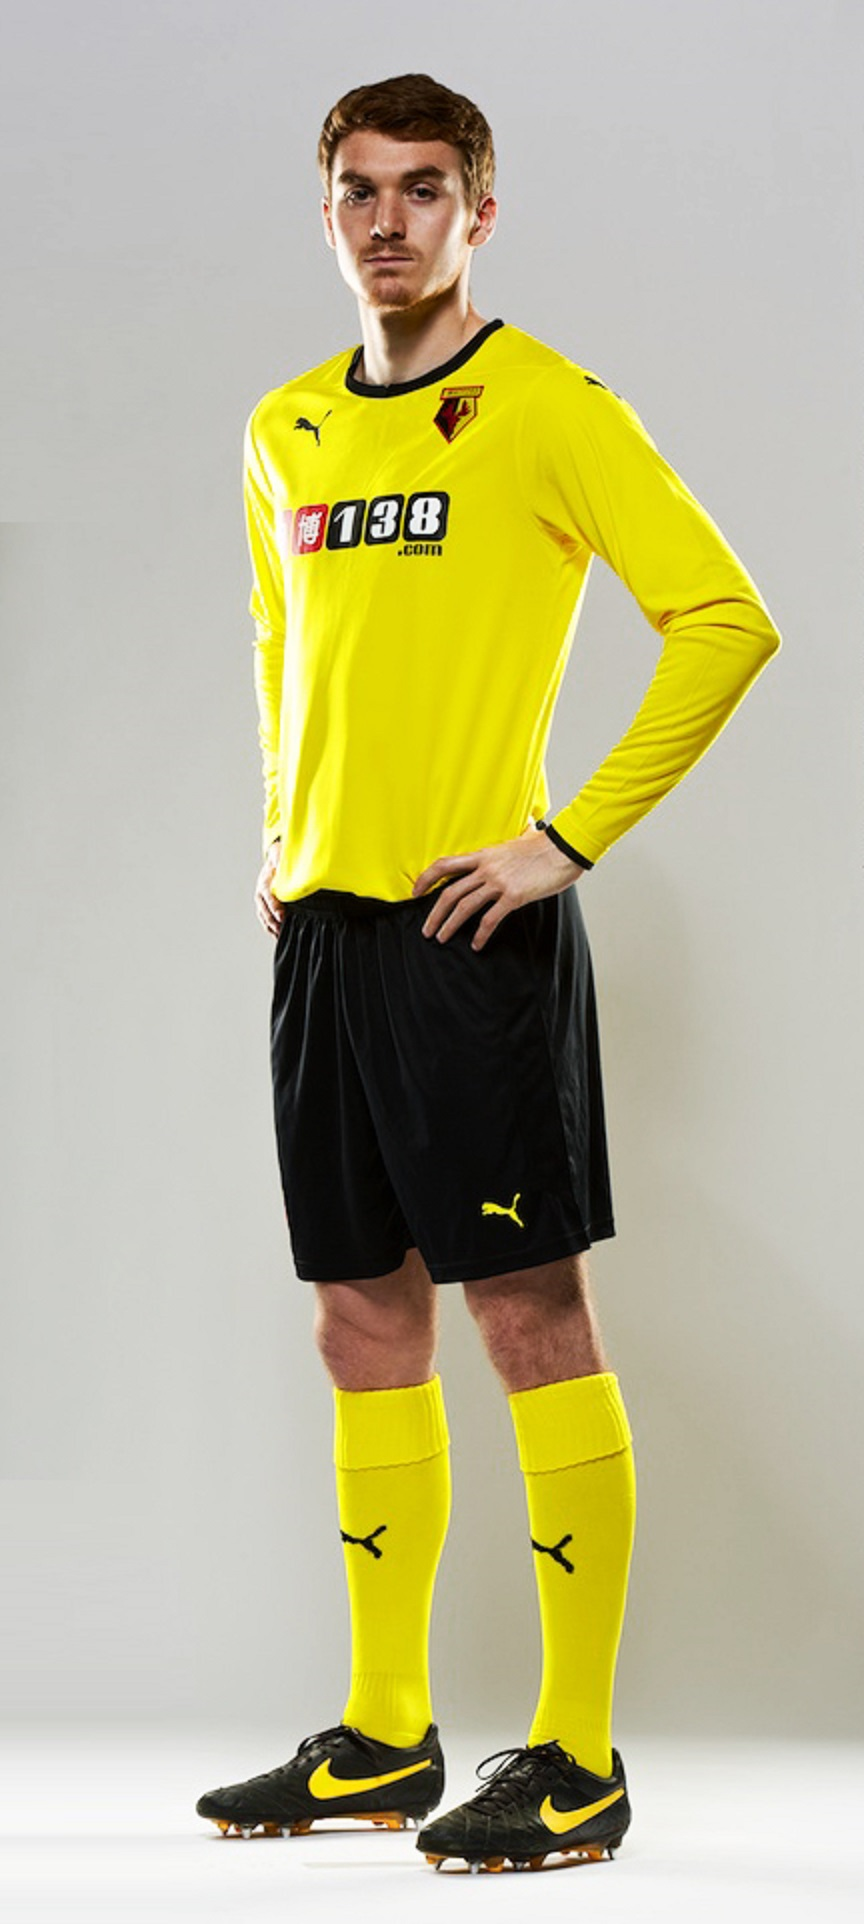 Tommie Hoban models the yellow and black combination that Watford will wear this season.